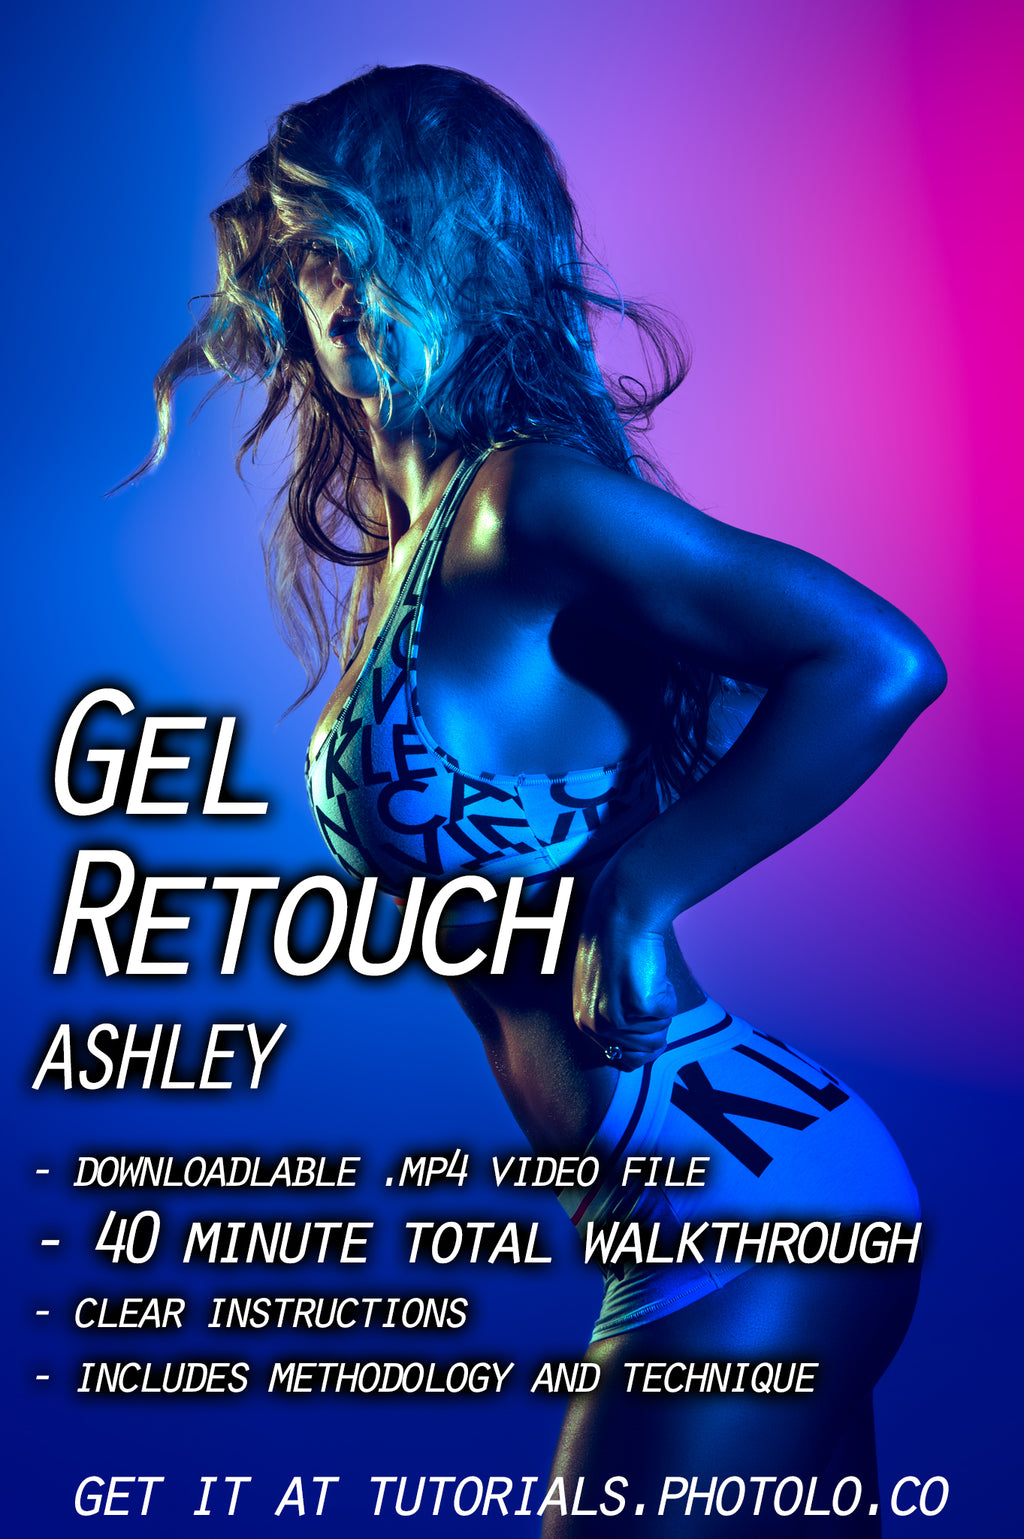 Gel Retouch: Ashley